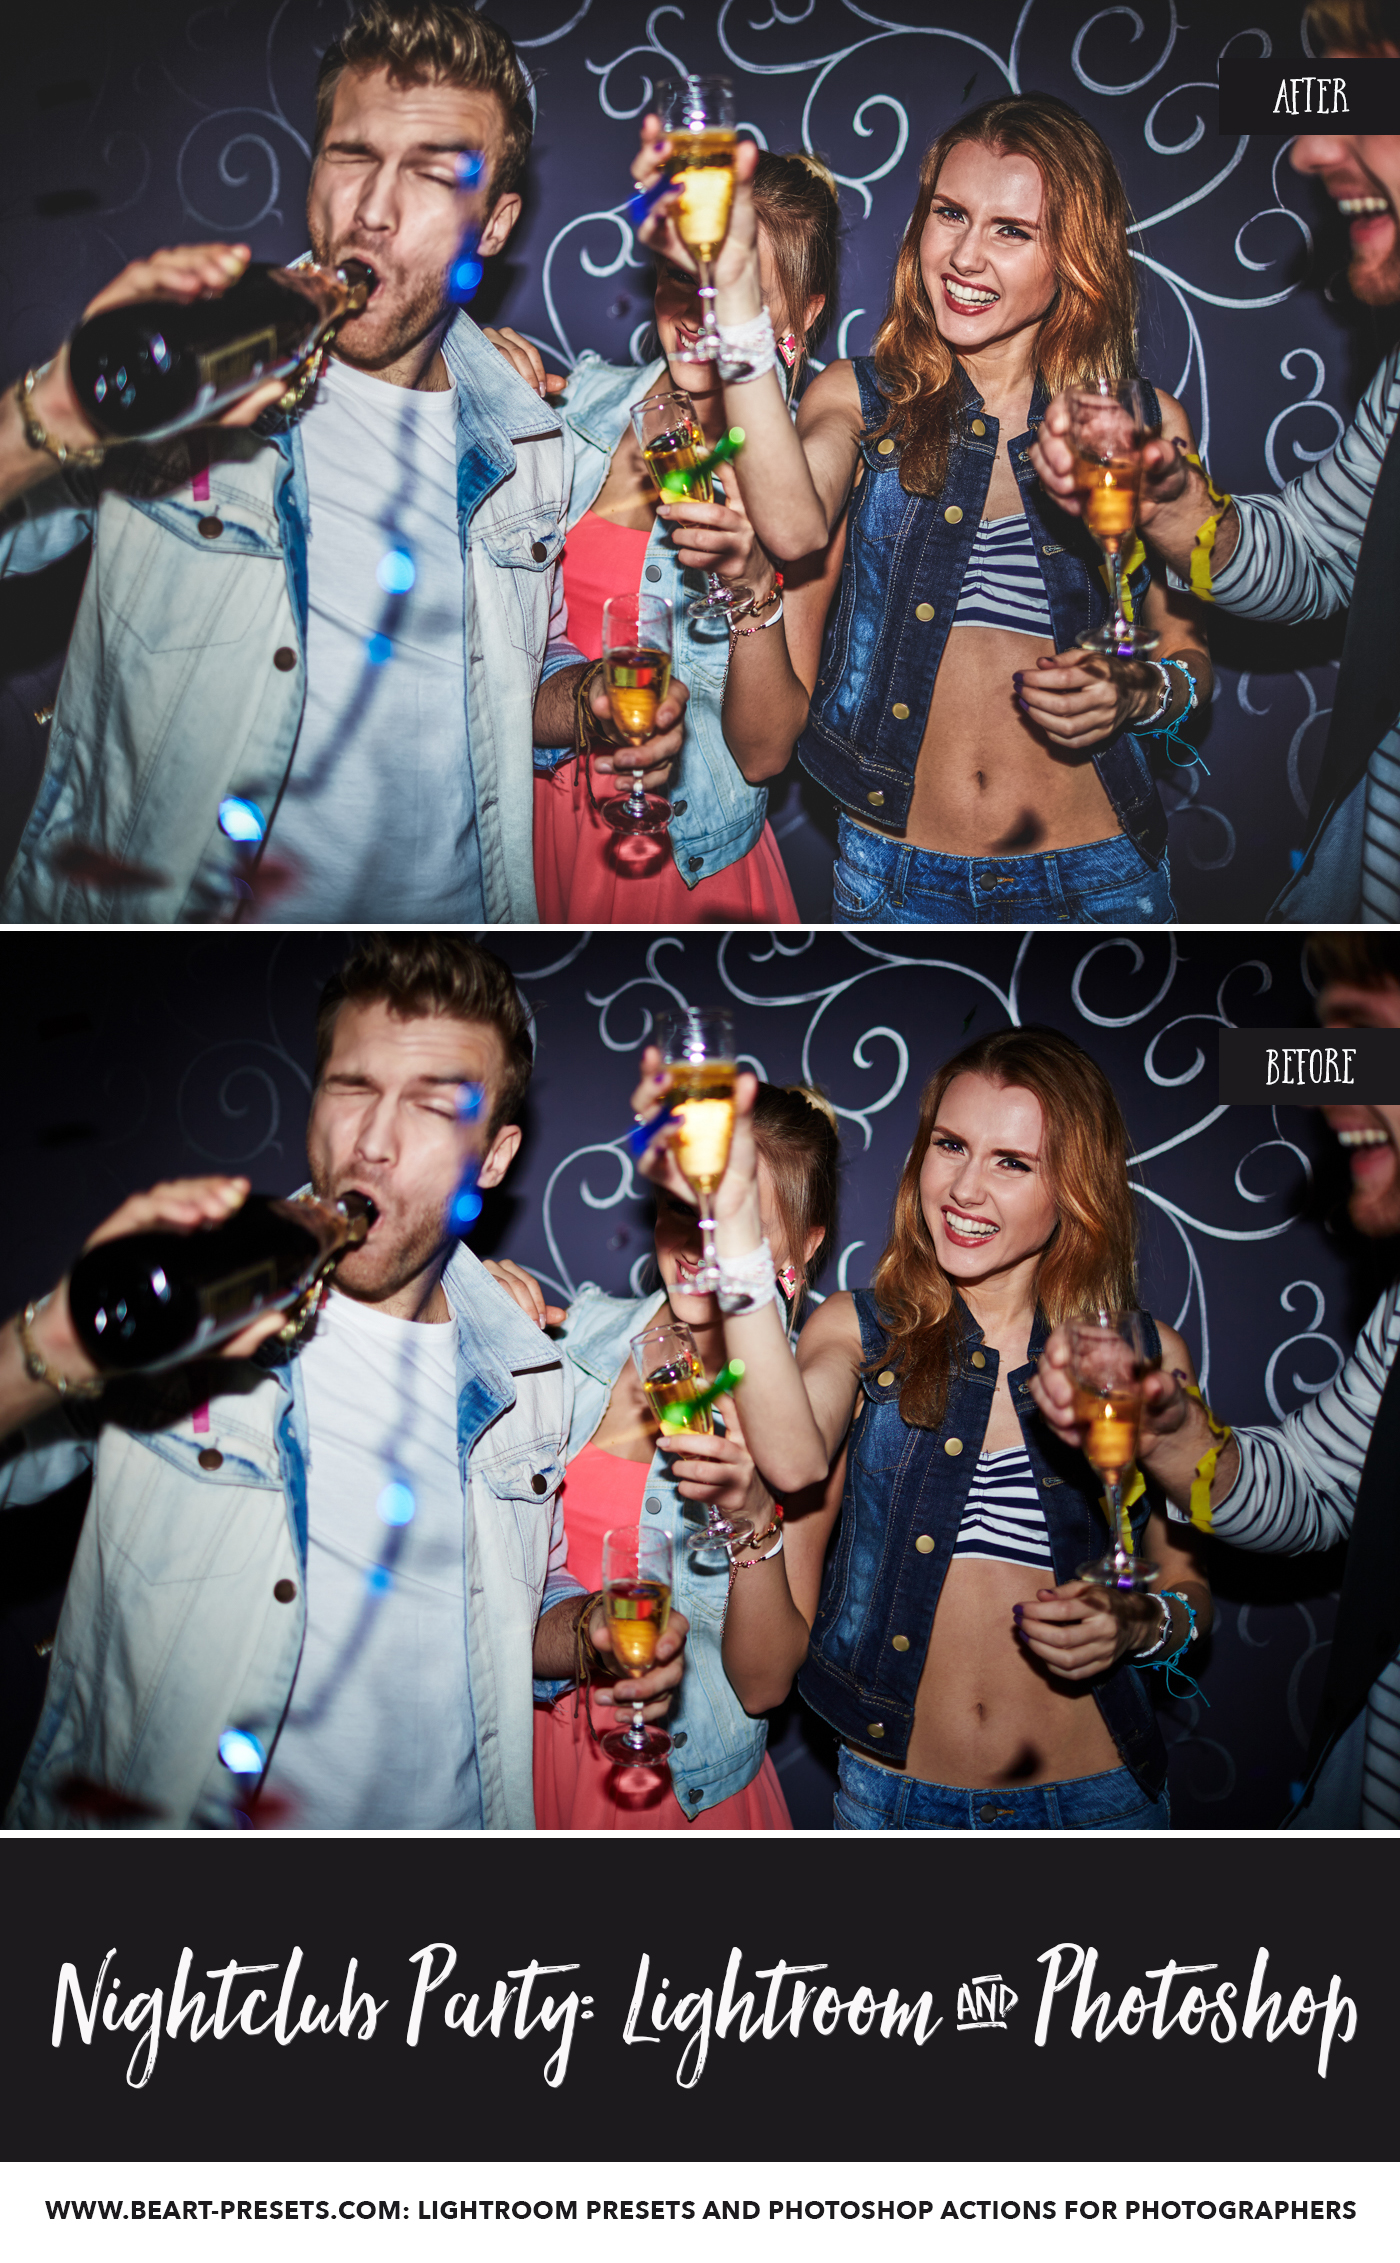 Lightroom presets for nightclub pictures